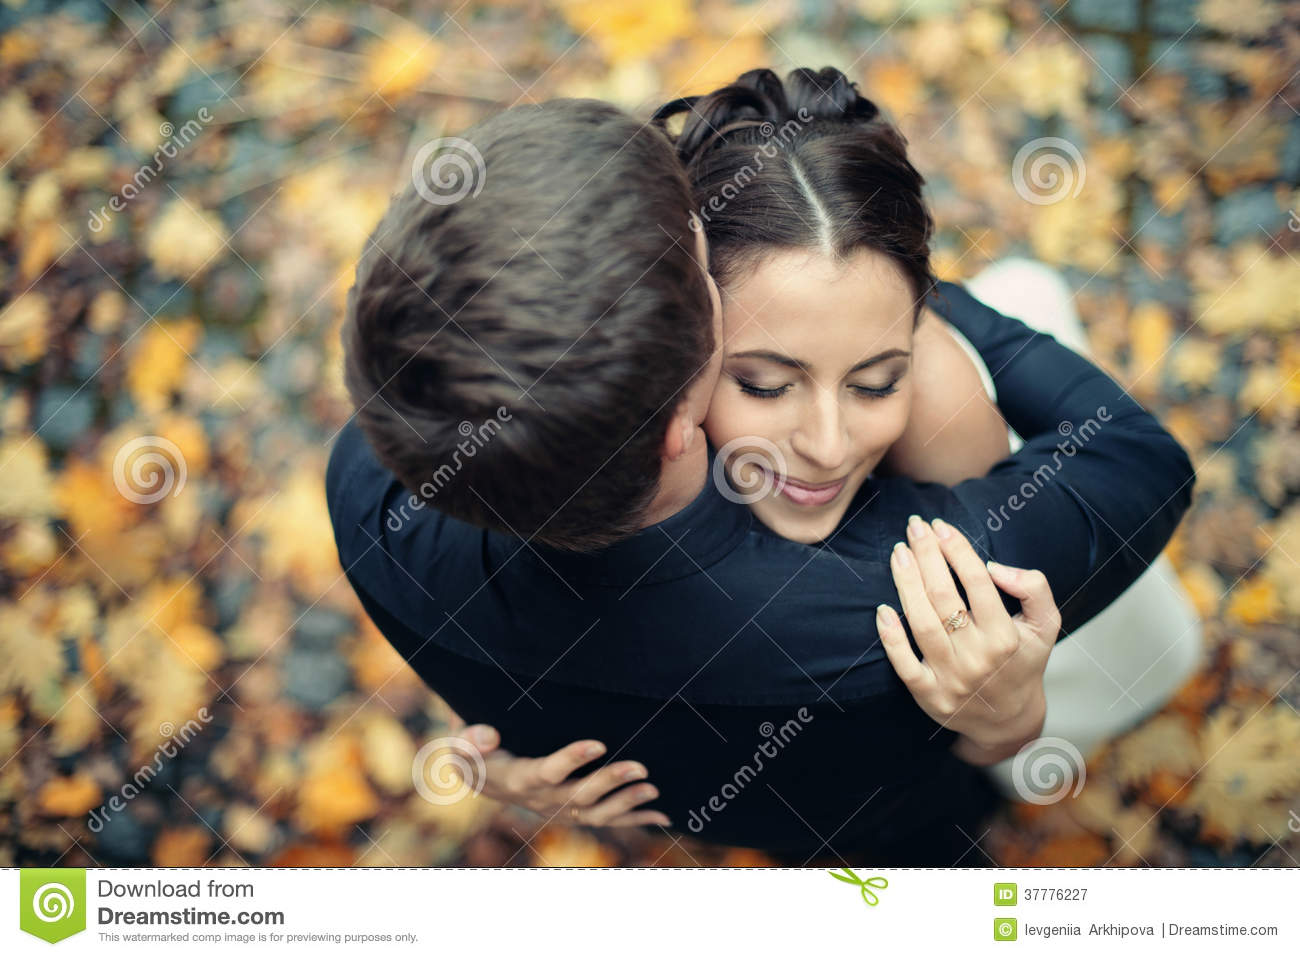 Download Wedding in autumn park stock image. Image of female, groom - 37776227